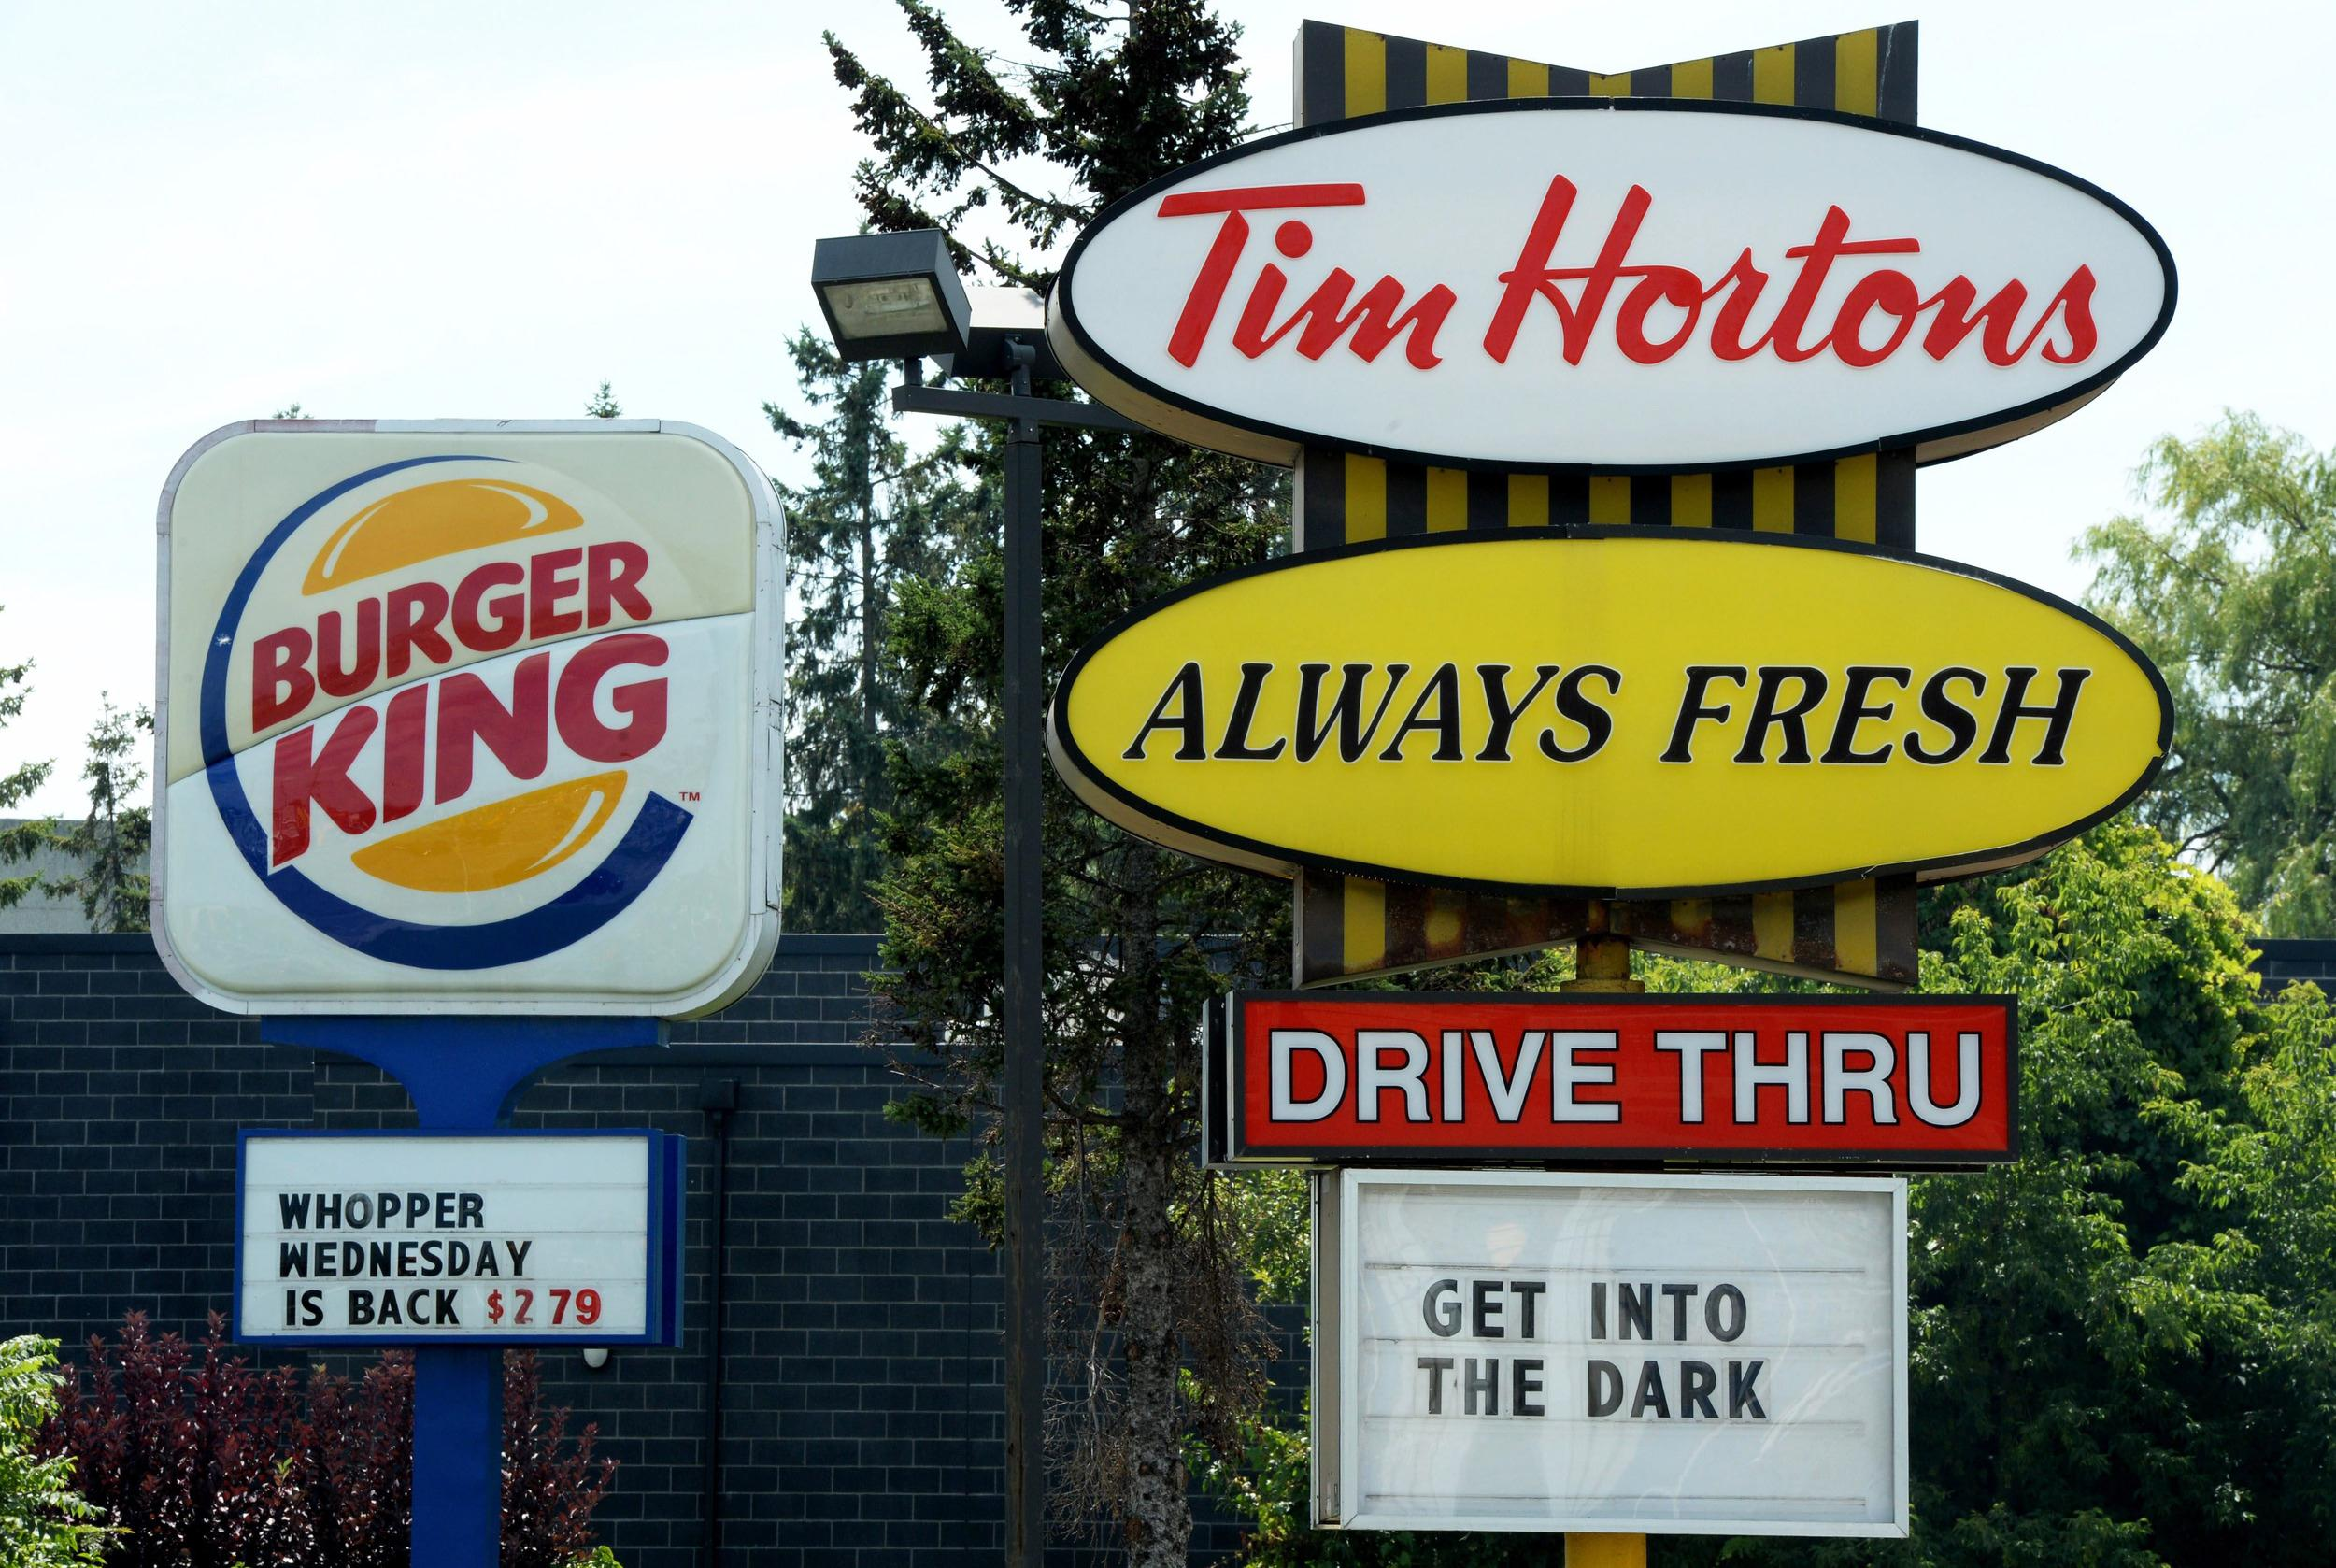 Burger King confirmed it reached a deal to buy Canada's Tim Hortons chain for about $11 billion.